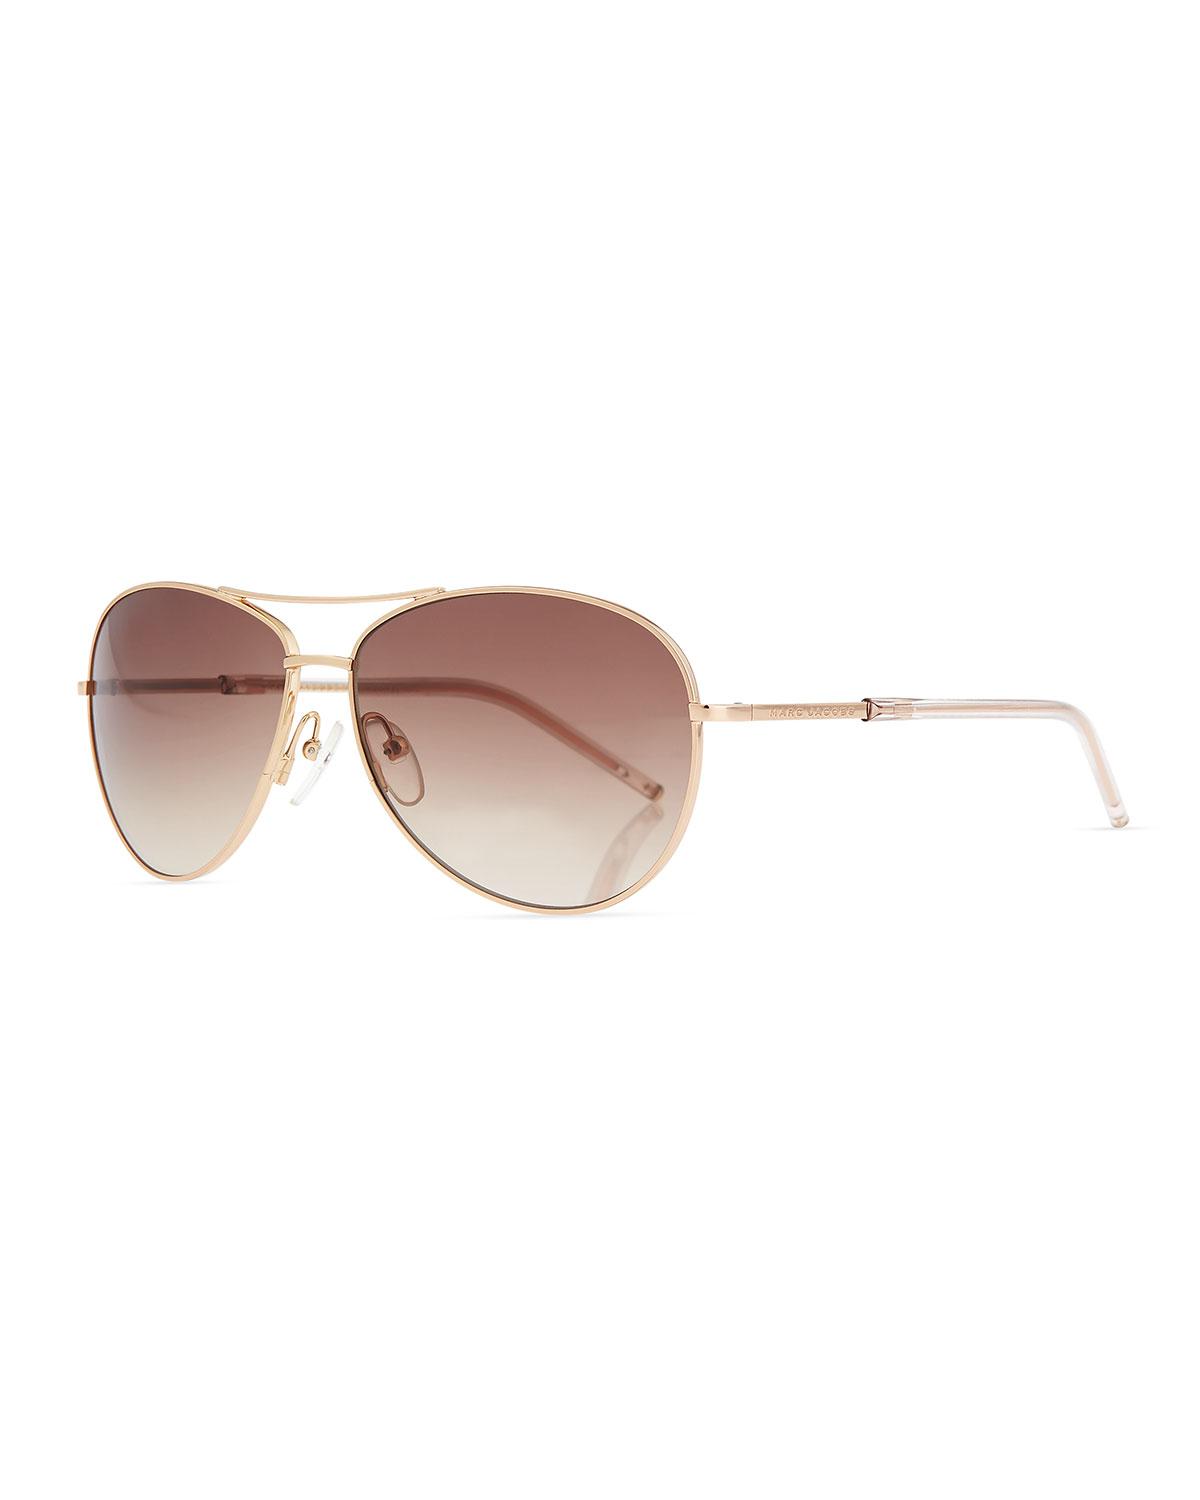 406d13b0101 Marc Jacobs Metal Curved-Brow Aviator Sunglasses